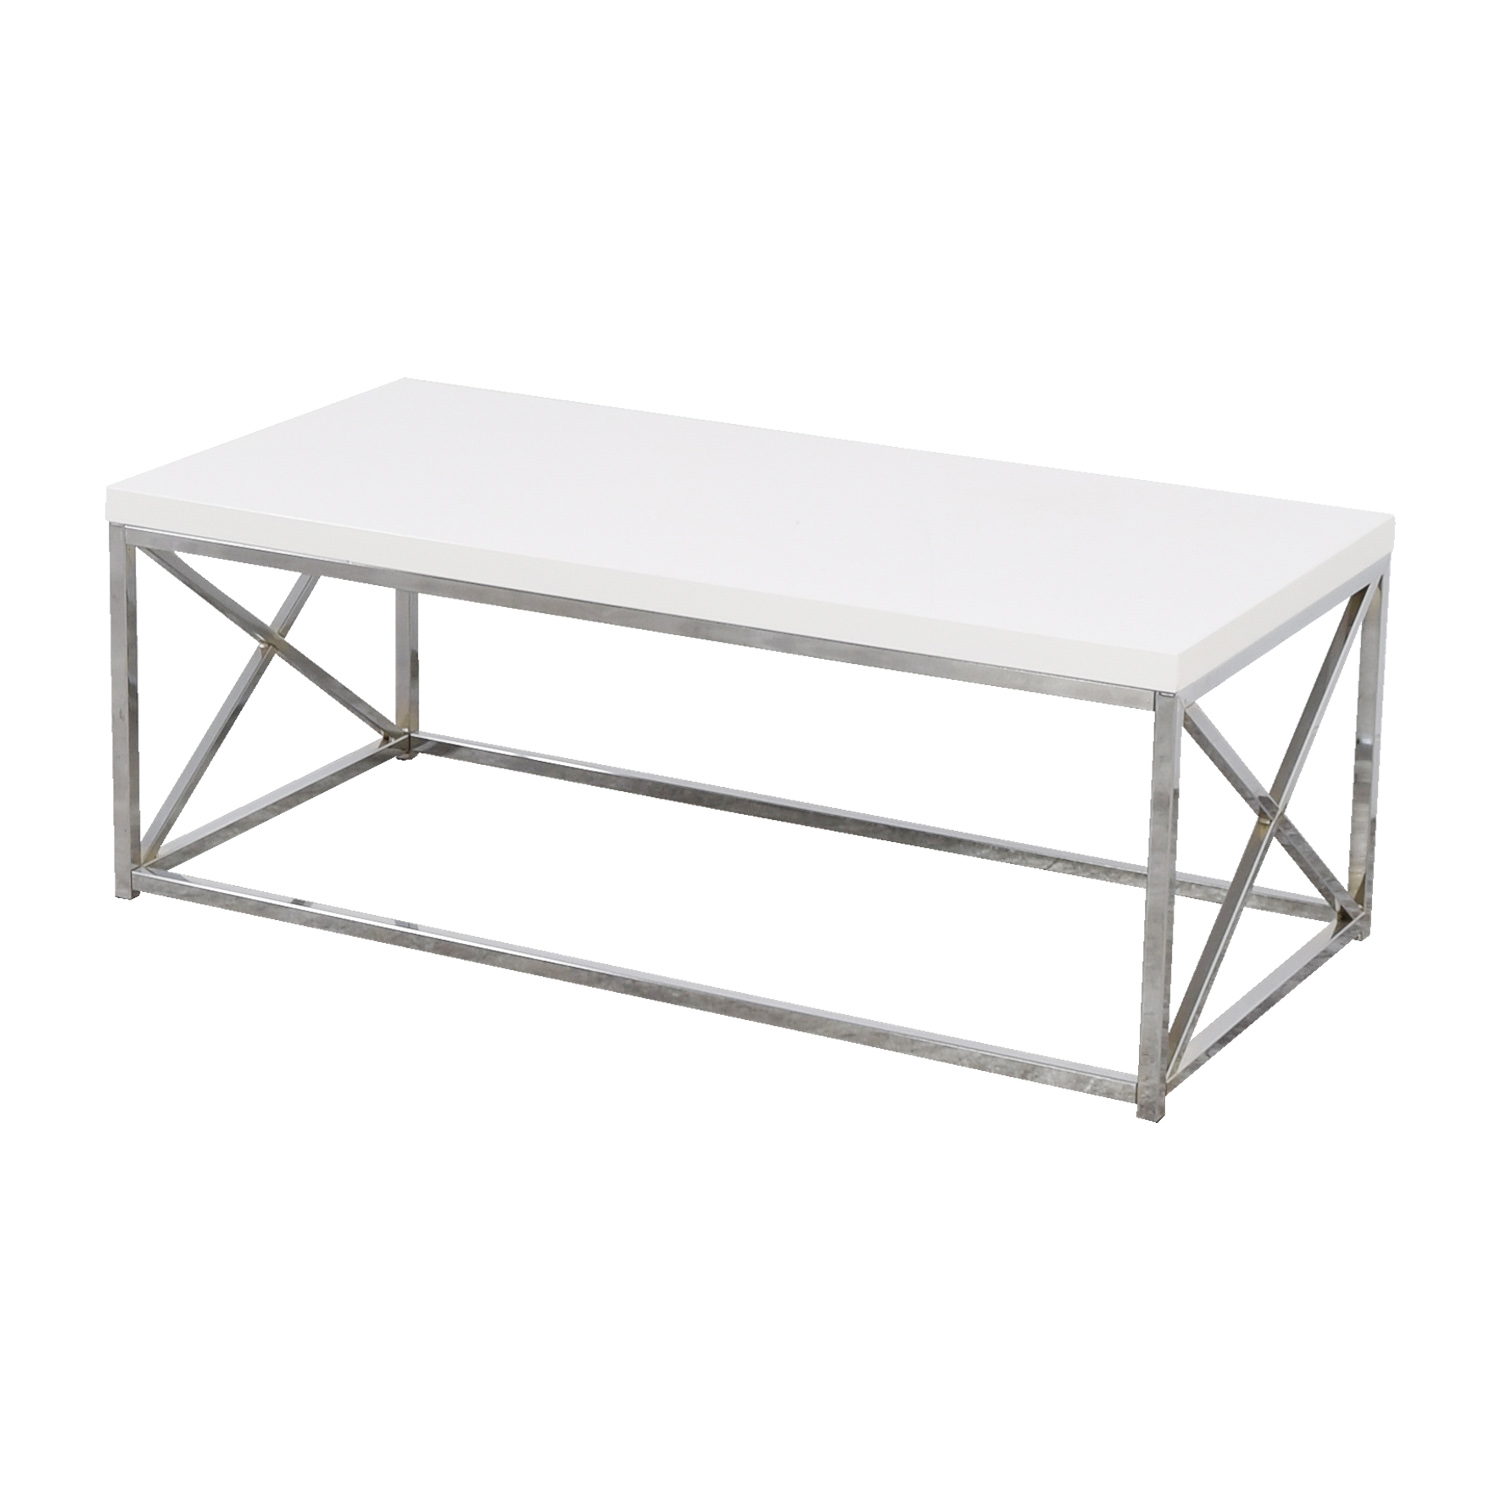 51 off white top with chrome base coffee table tables. Black Bedroom Furniture Sets. Home Design Ideas